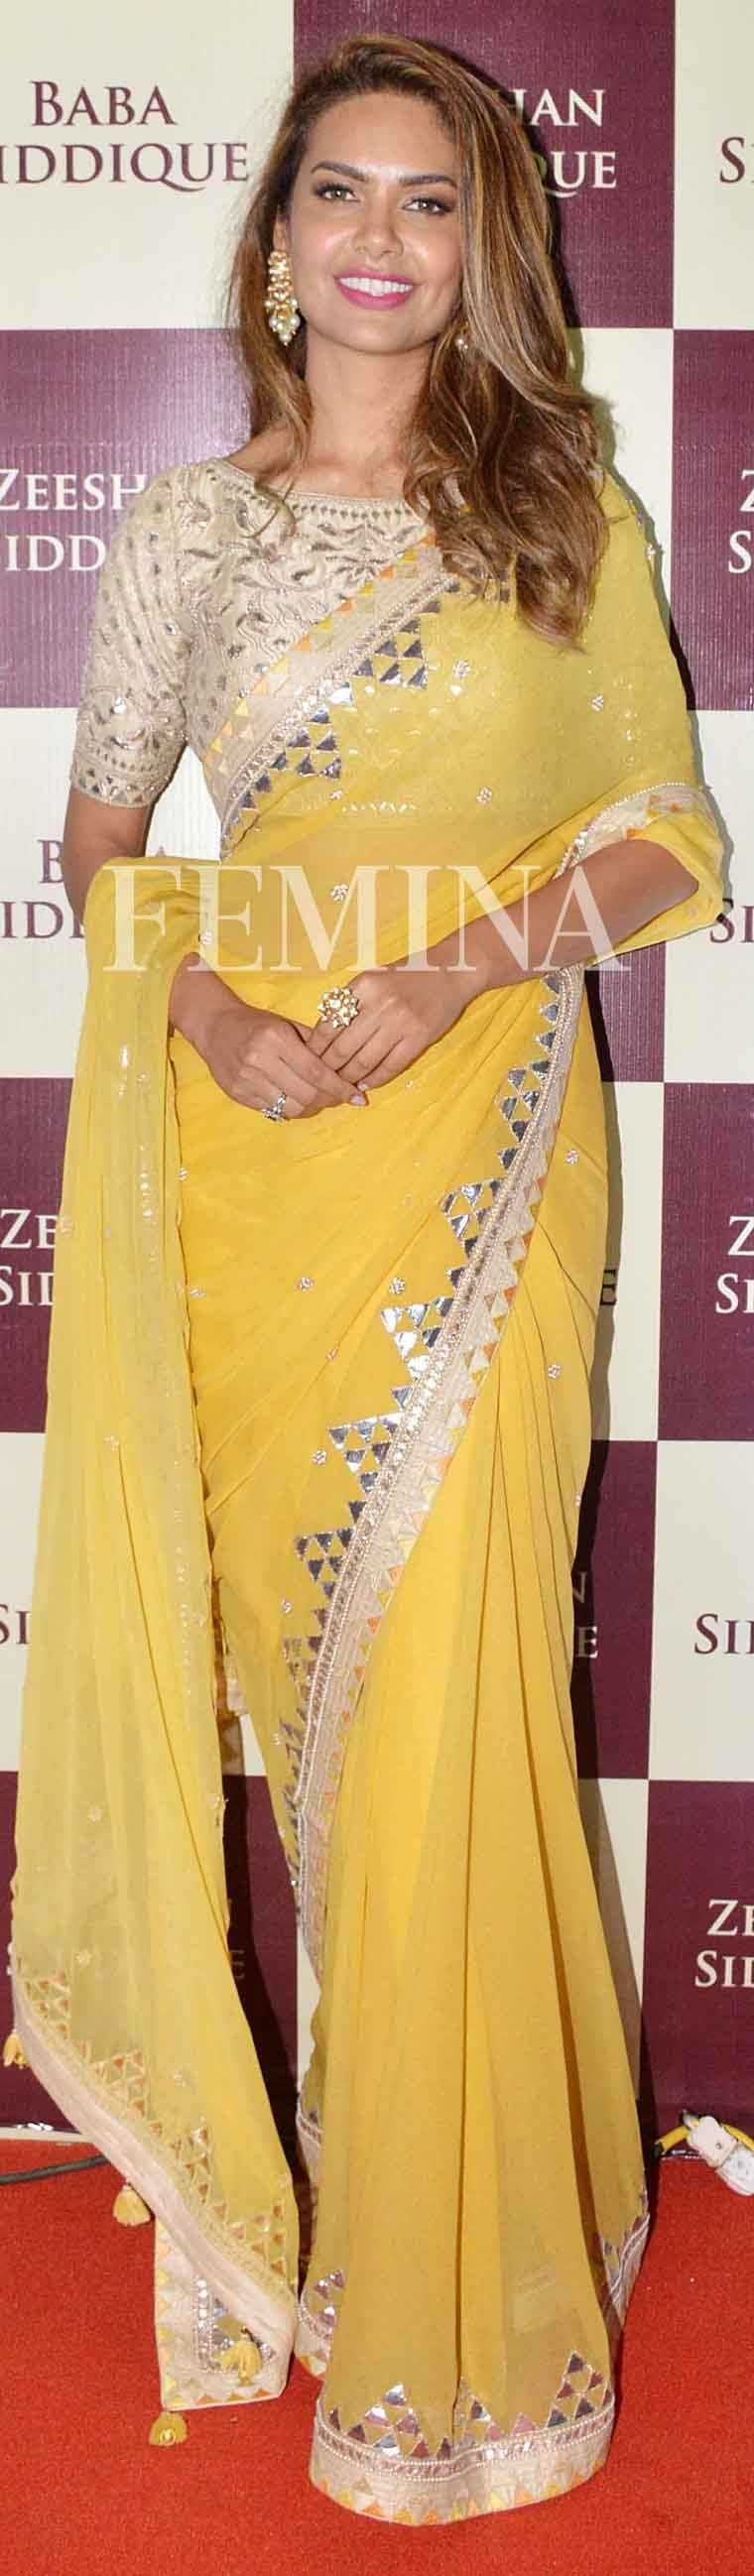 Esha Gupta: Mango Esha chose a happy yellow sari by Anita Dongre and matched it with jewellery from the designer's Pink City collection.